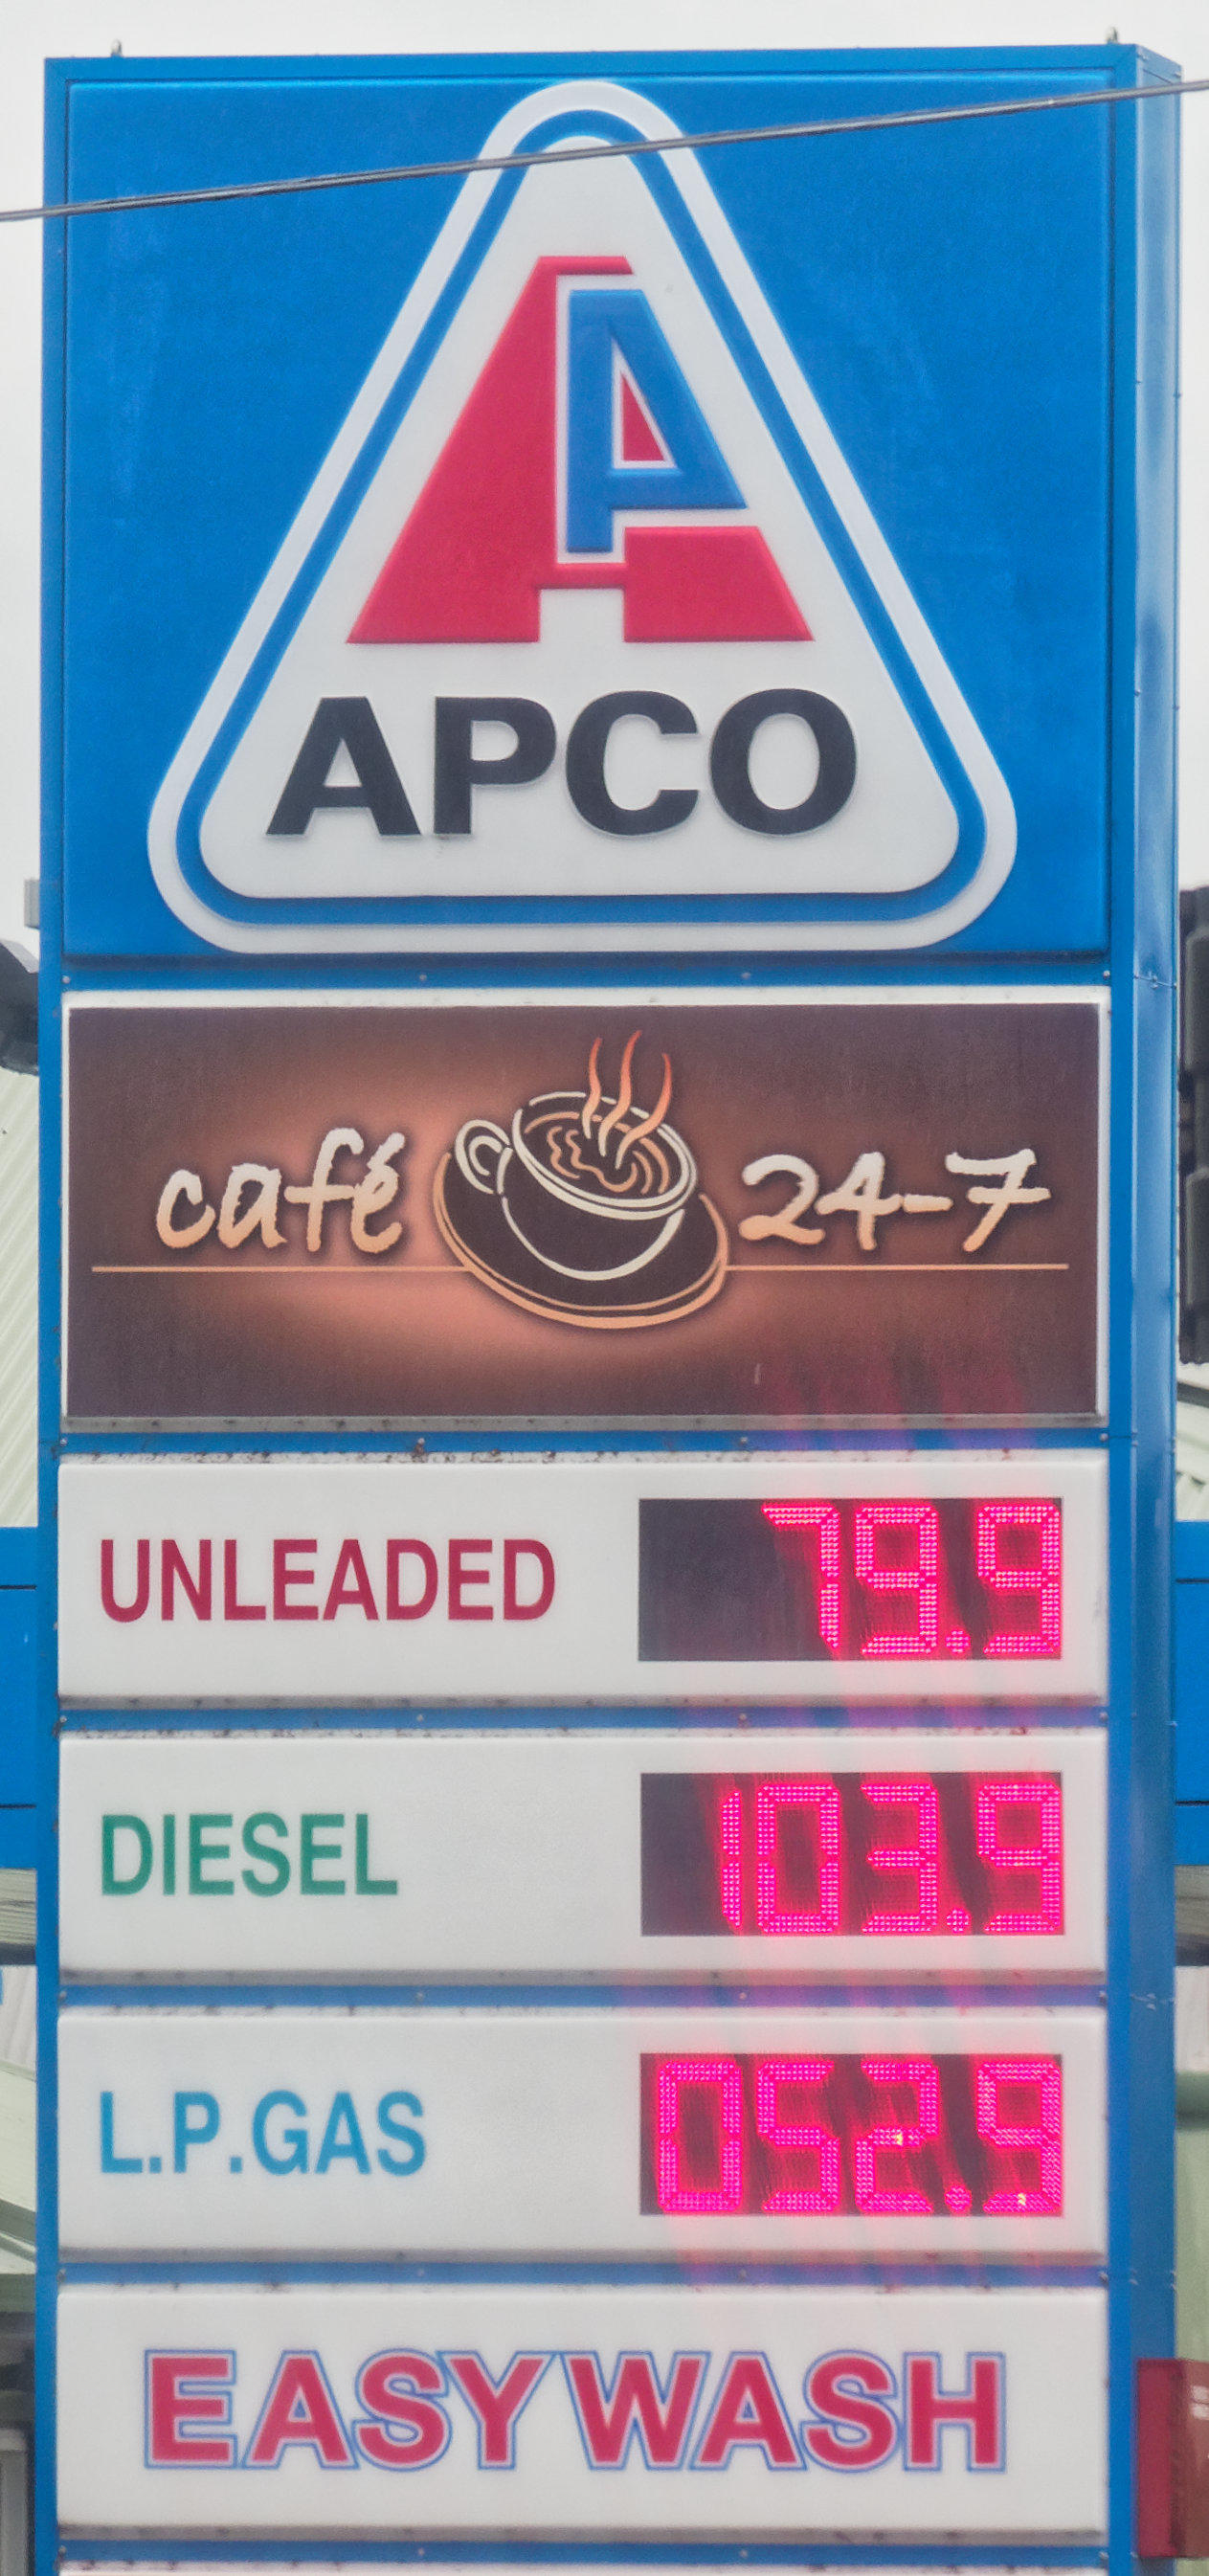 Petrol-prices-3.jpeg